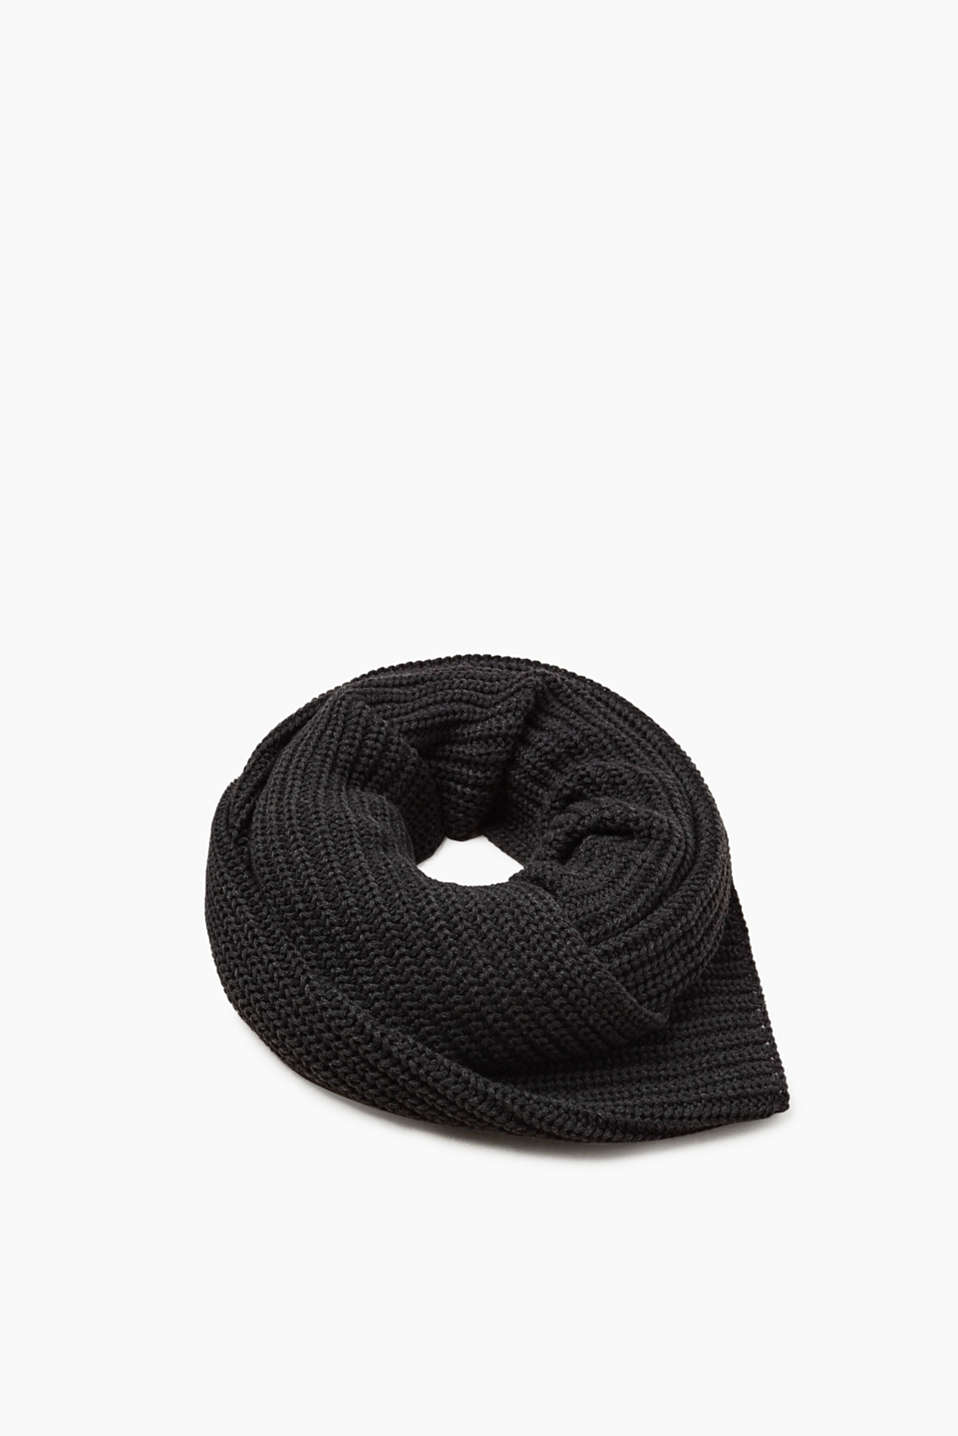 Esprit - XL scarf in a classic knit pattern